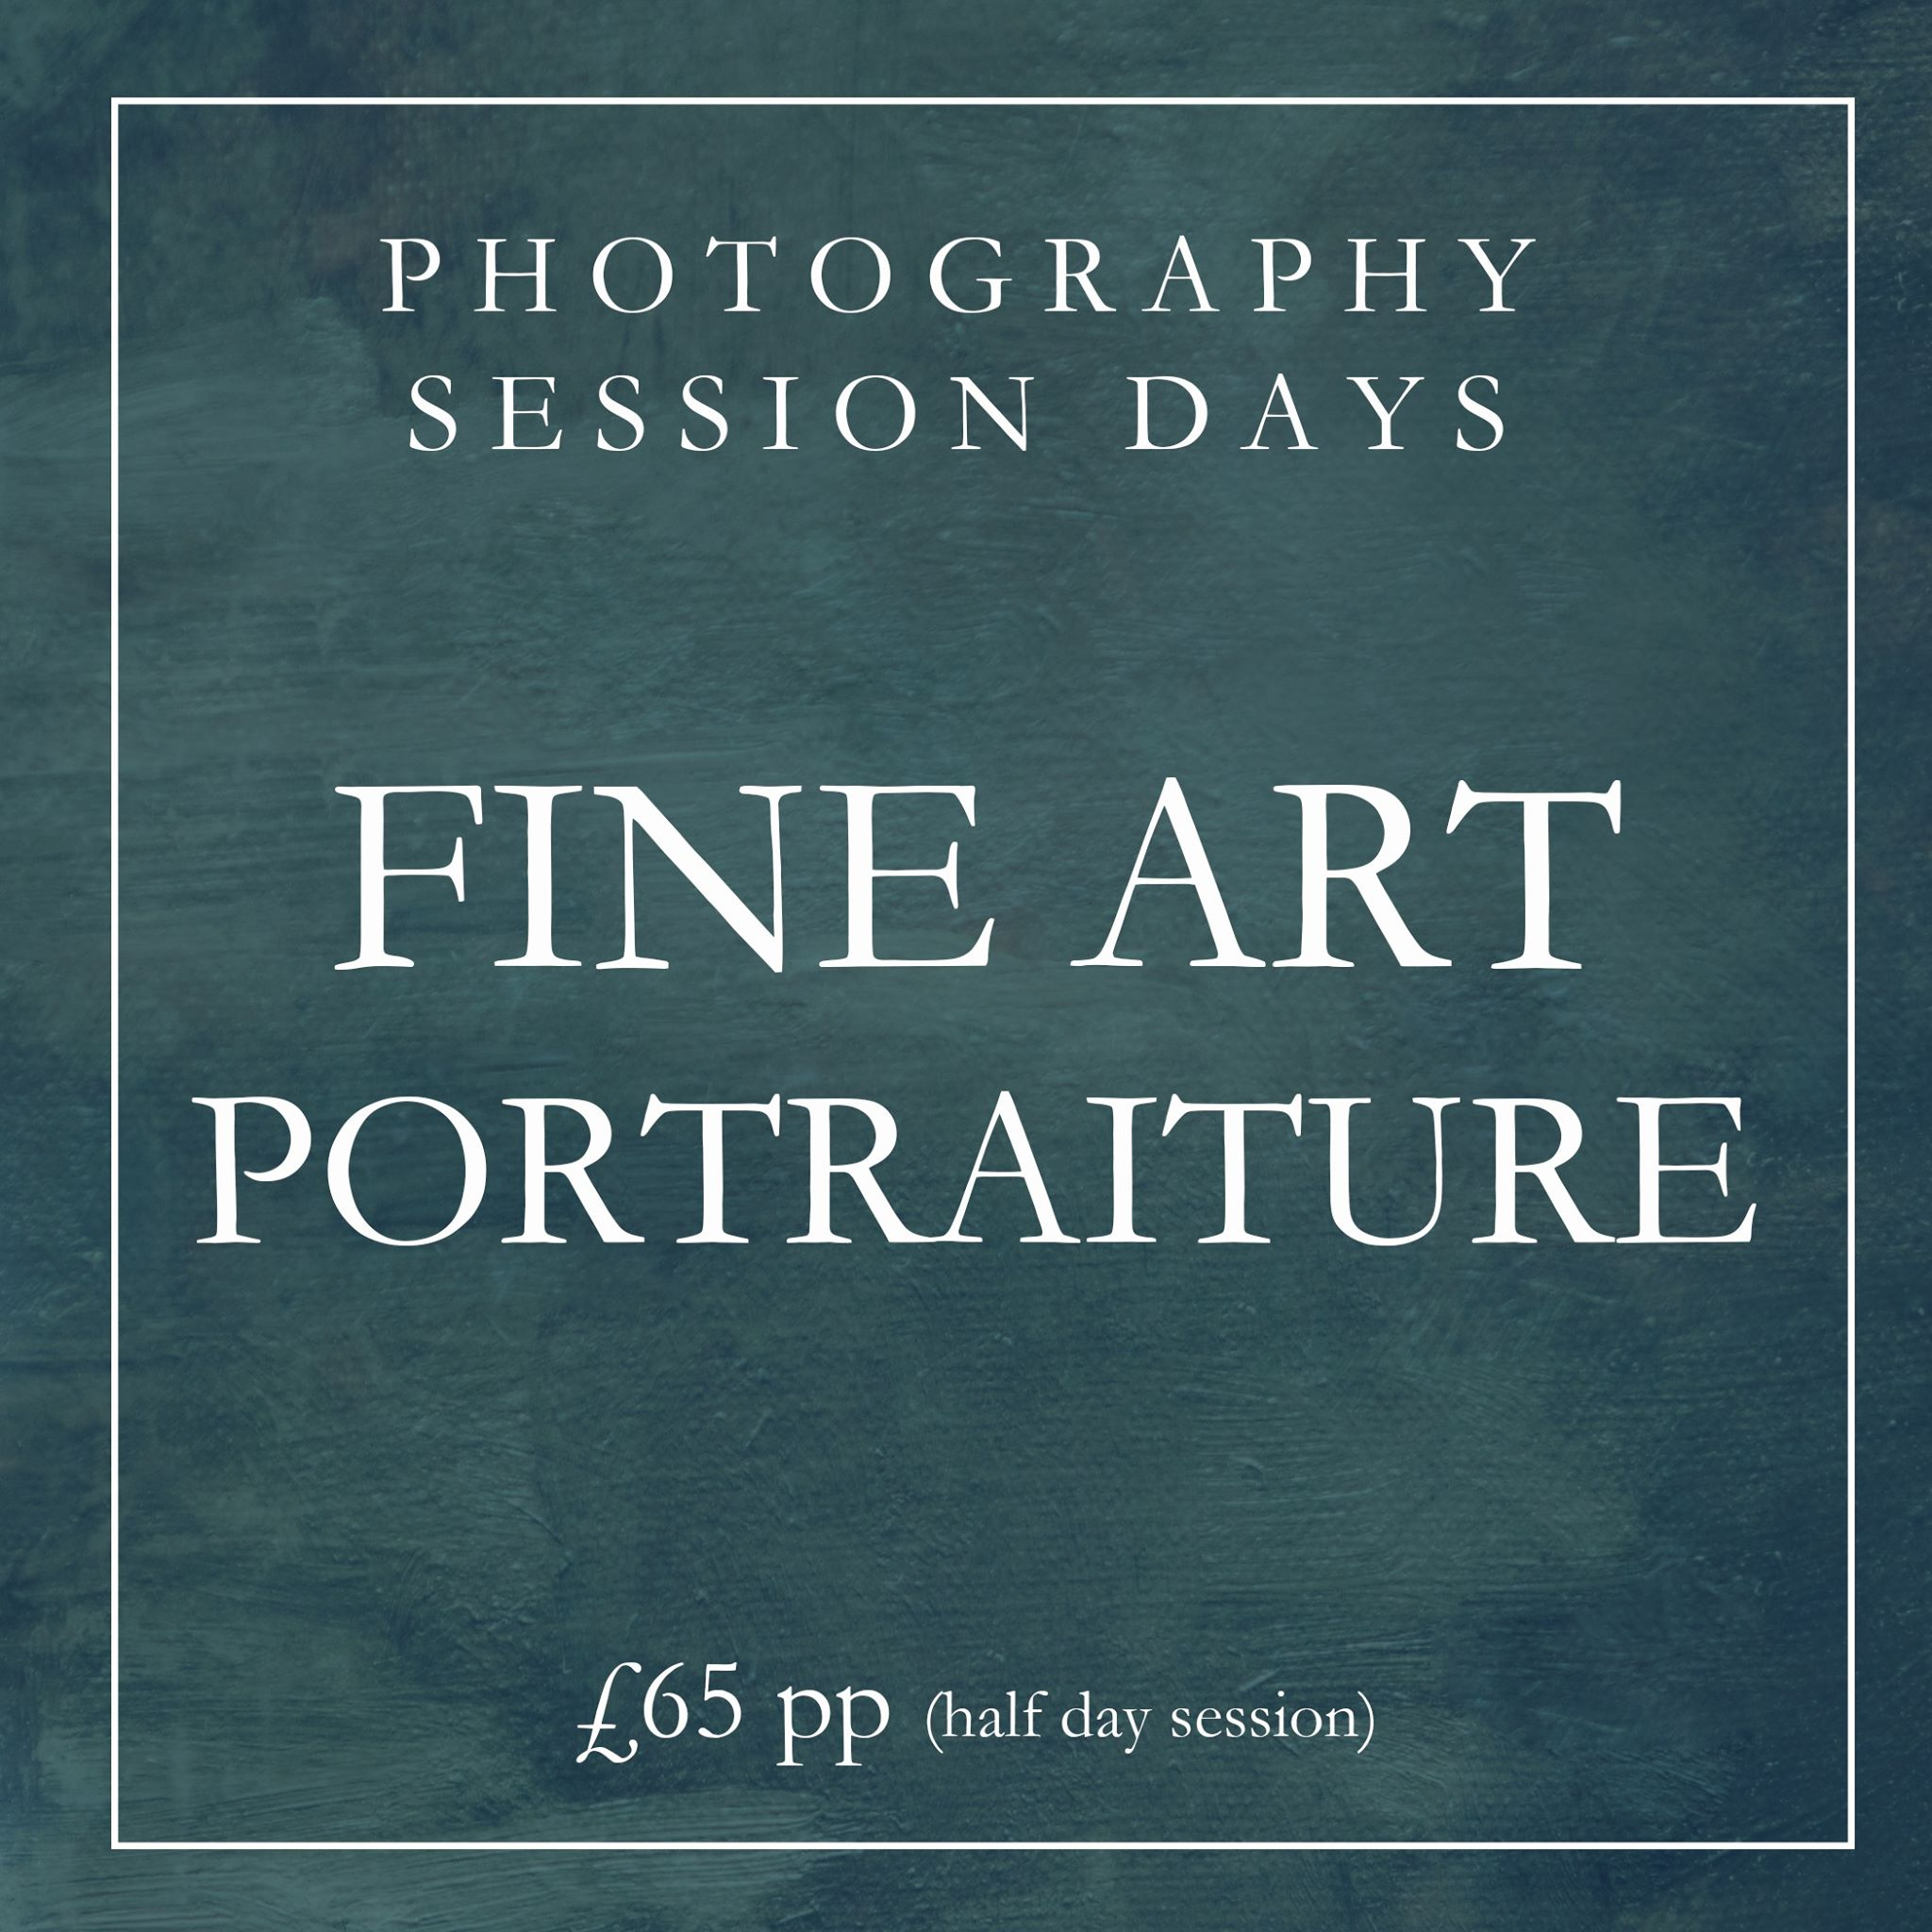 Creative Fine Art Portraiture Session Day